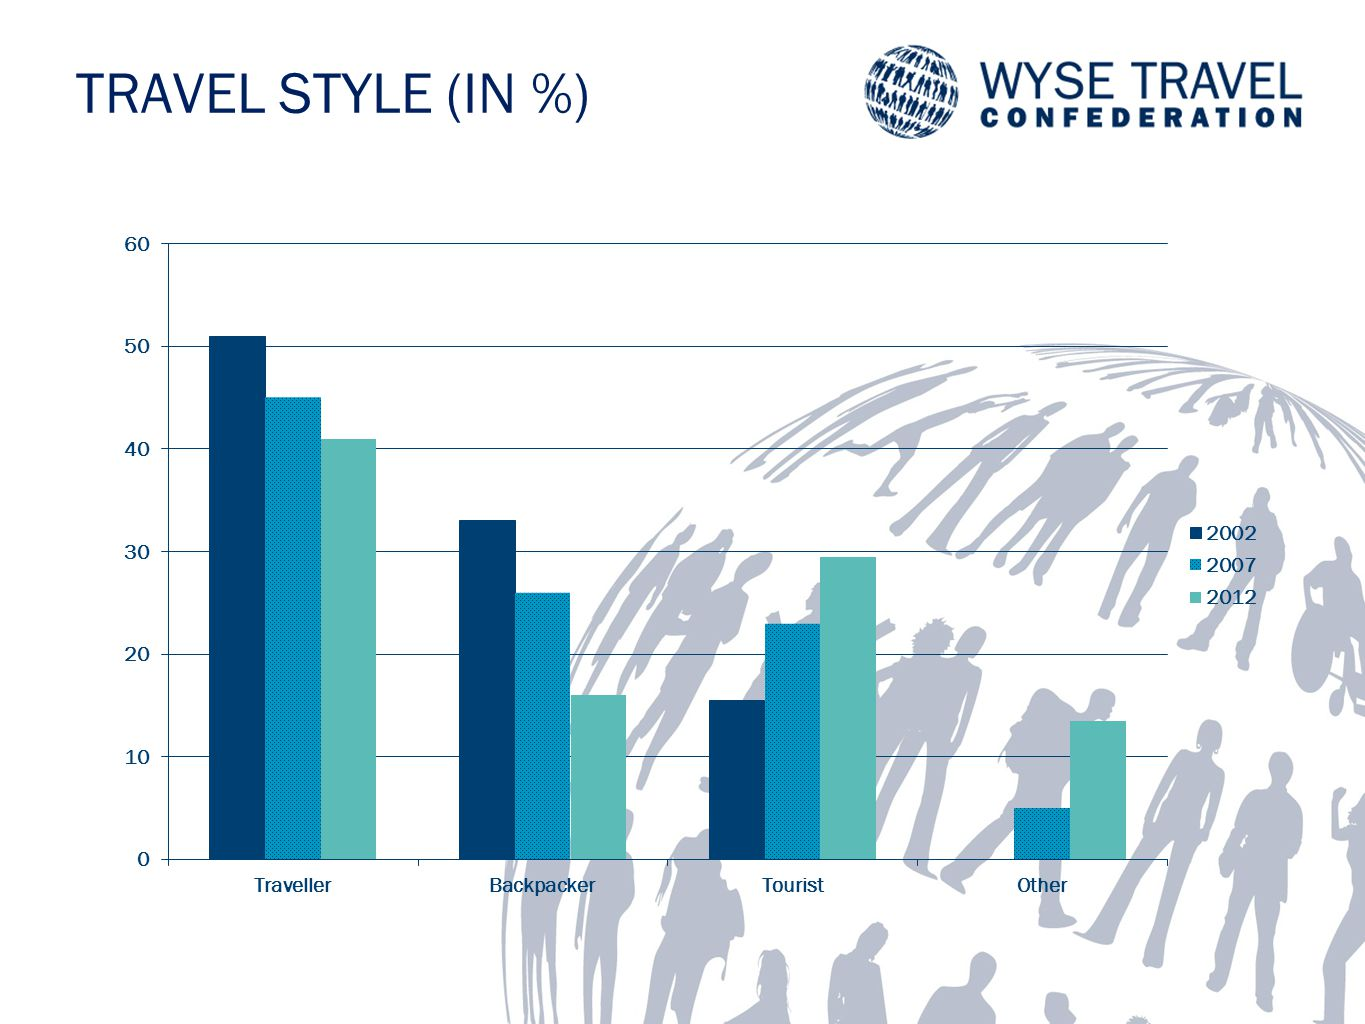 TRAVEL STYLE (IN %)